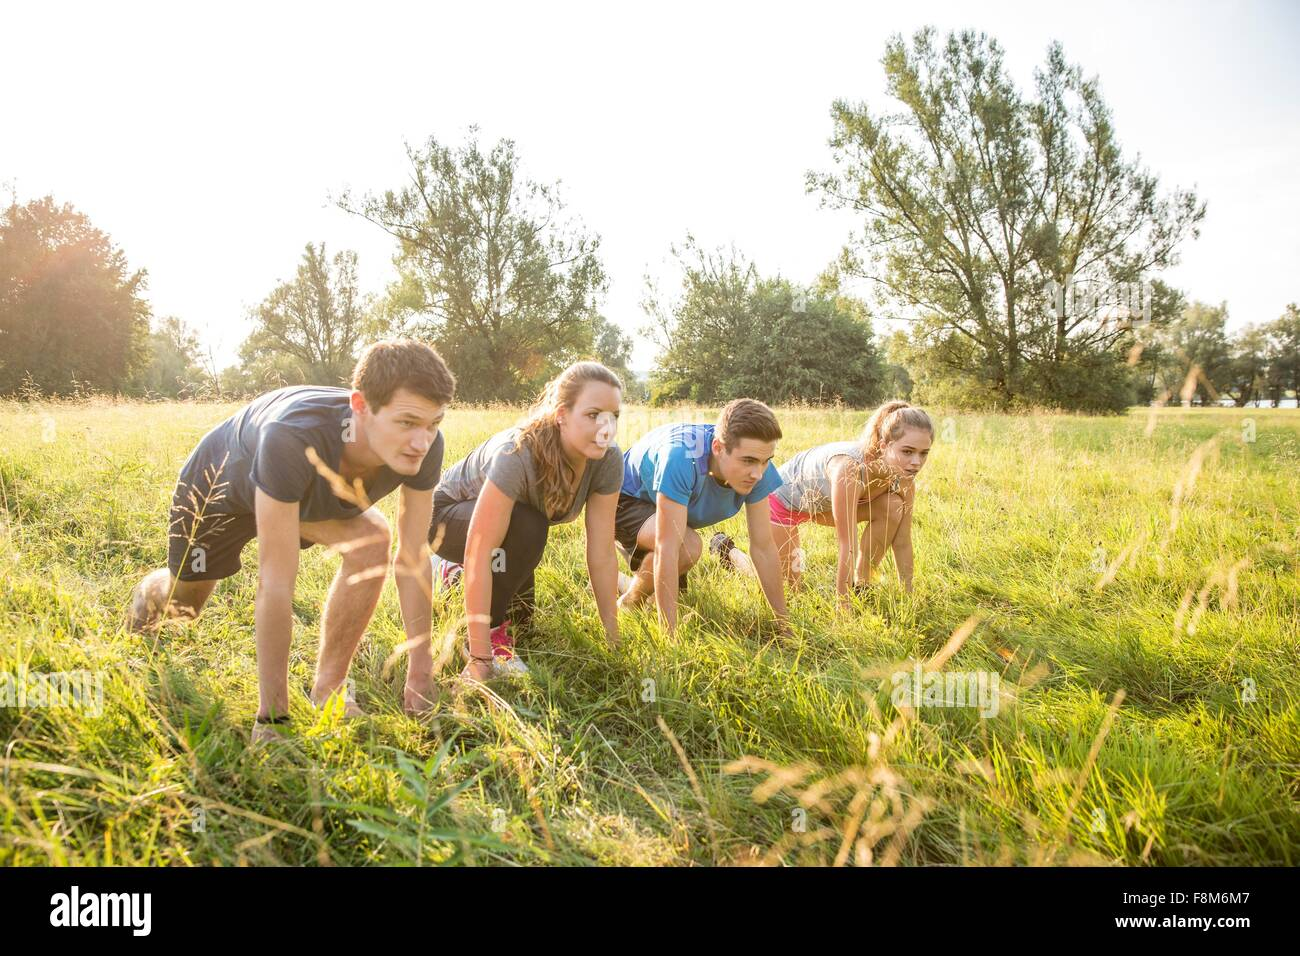 Group of friends in field, in starting position, about to race - Stock Image